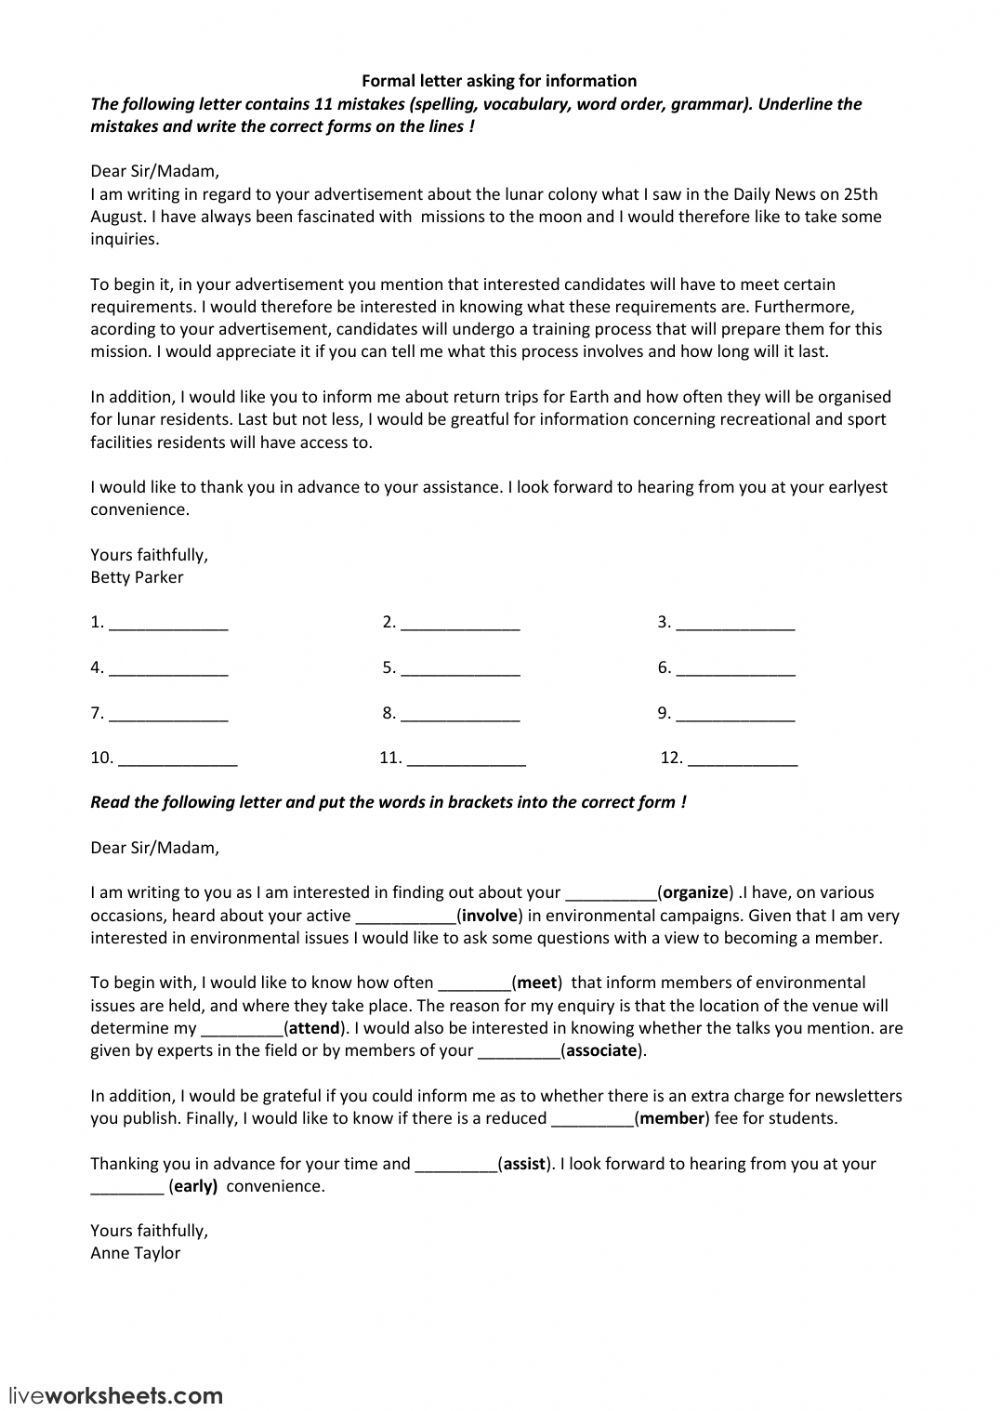 worksheet Formal Charge Worksheet formal charge worksheet the best and most comprehensive worksheets text